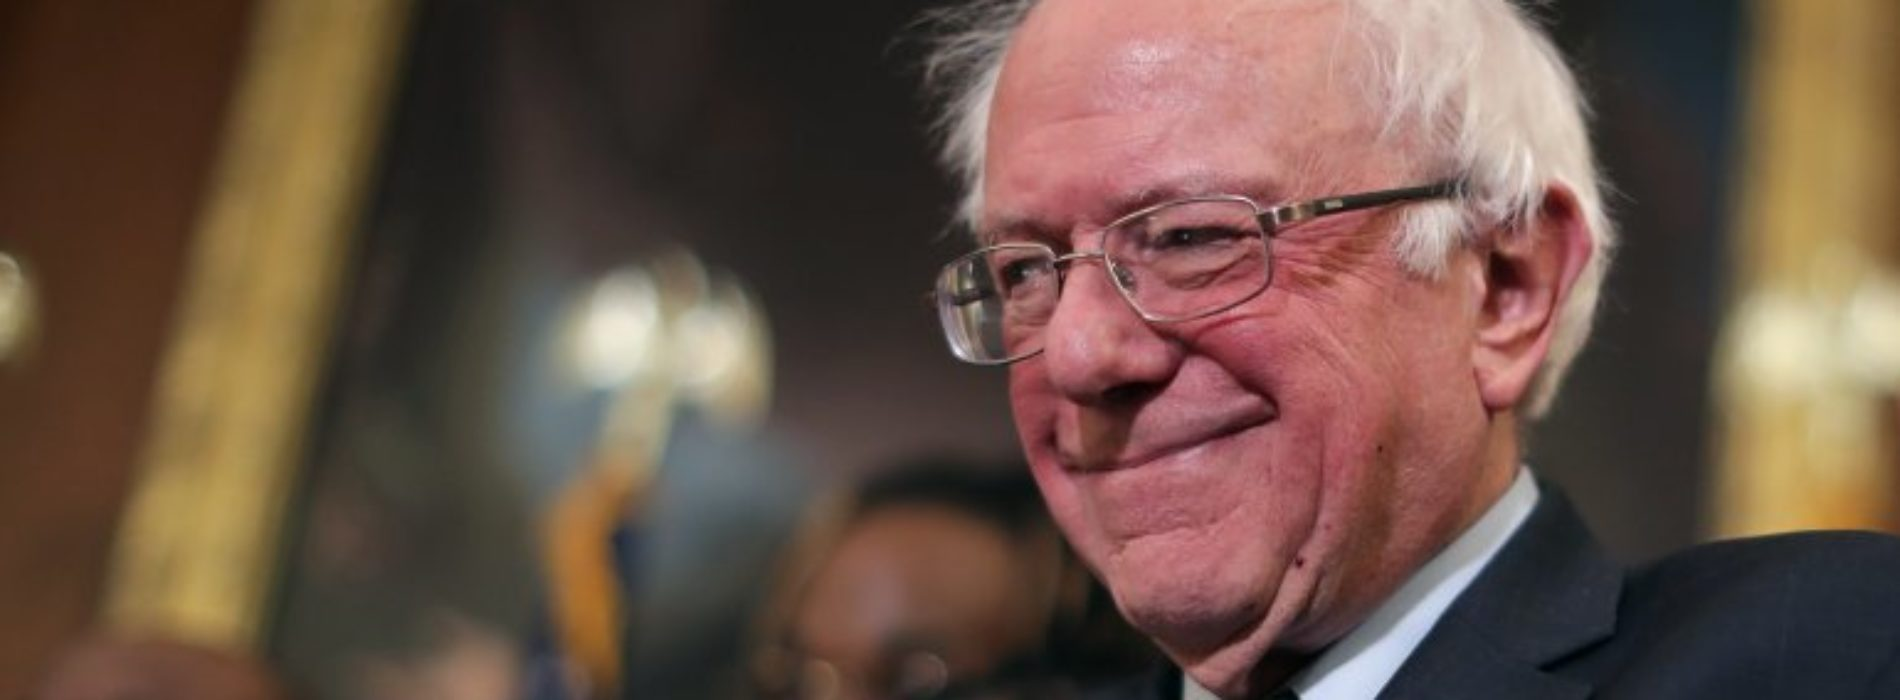 Sanders Raises More Than $46 Million in February